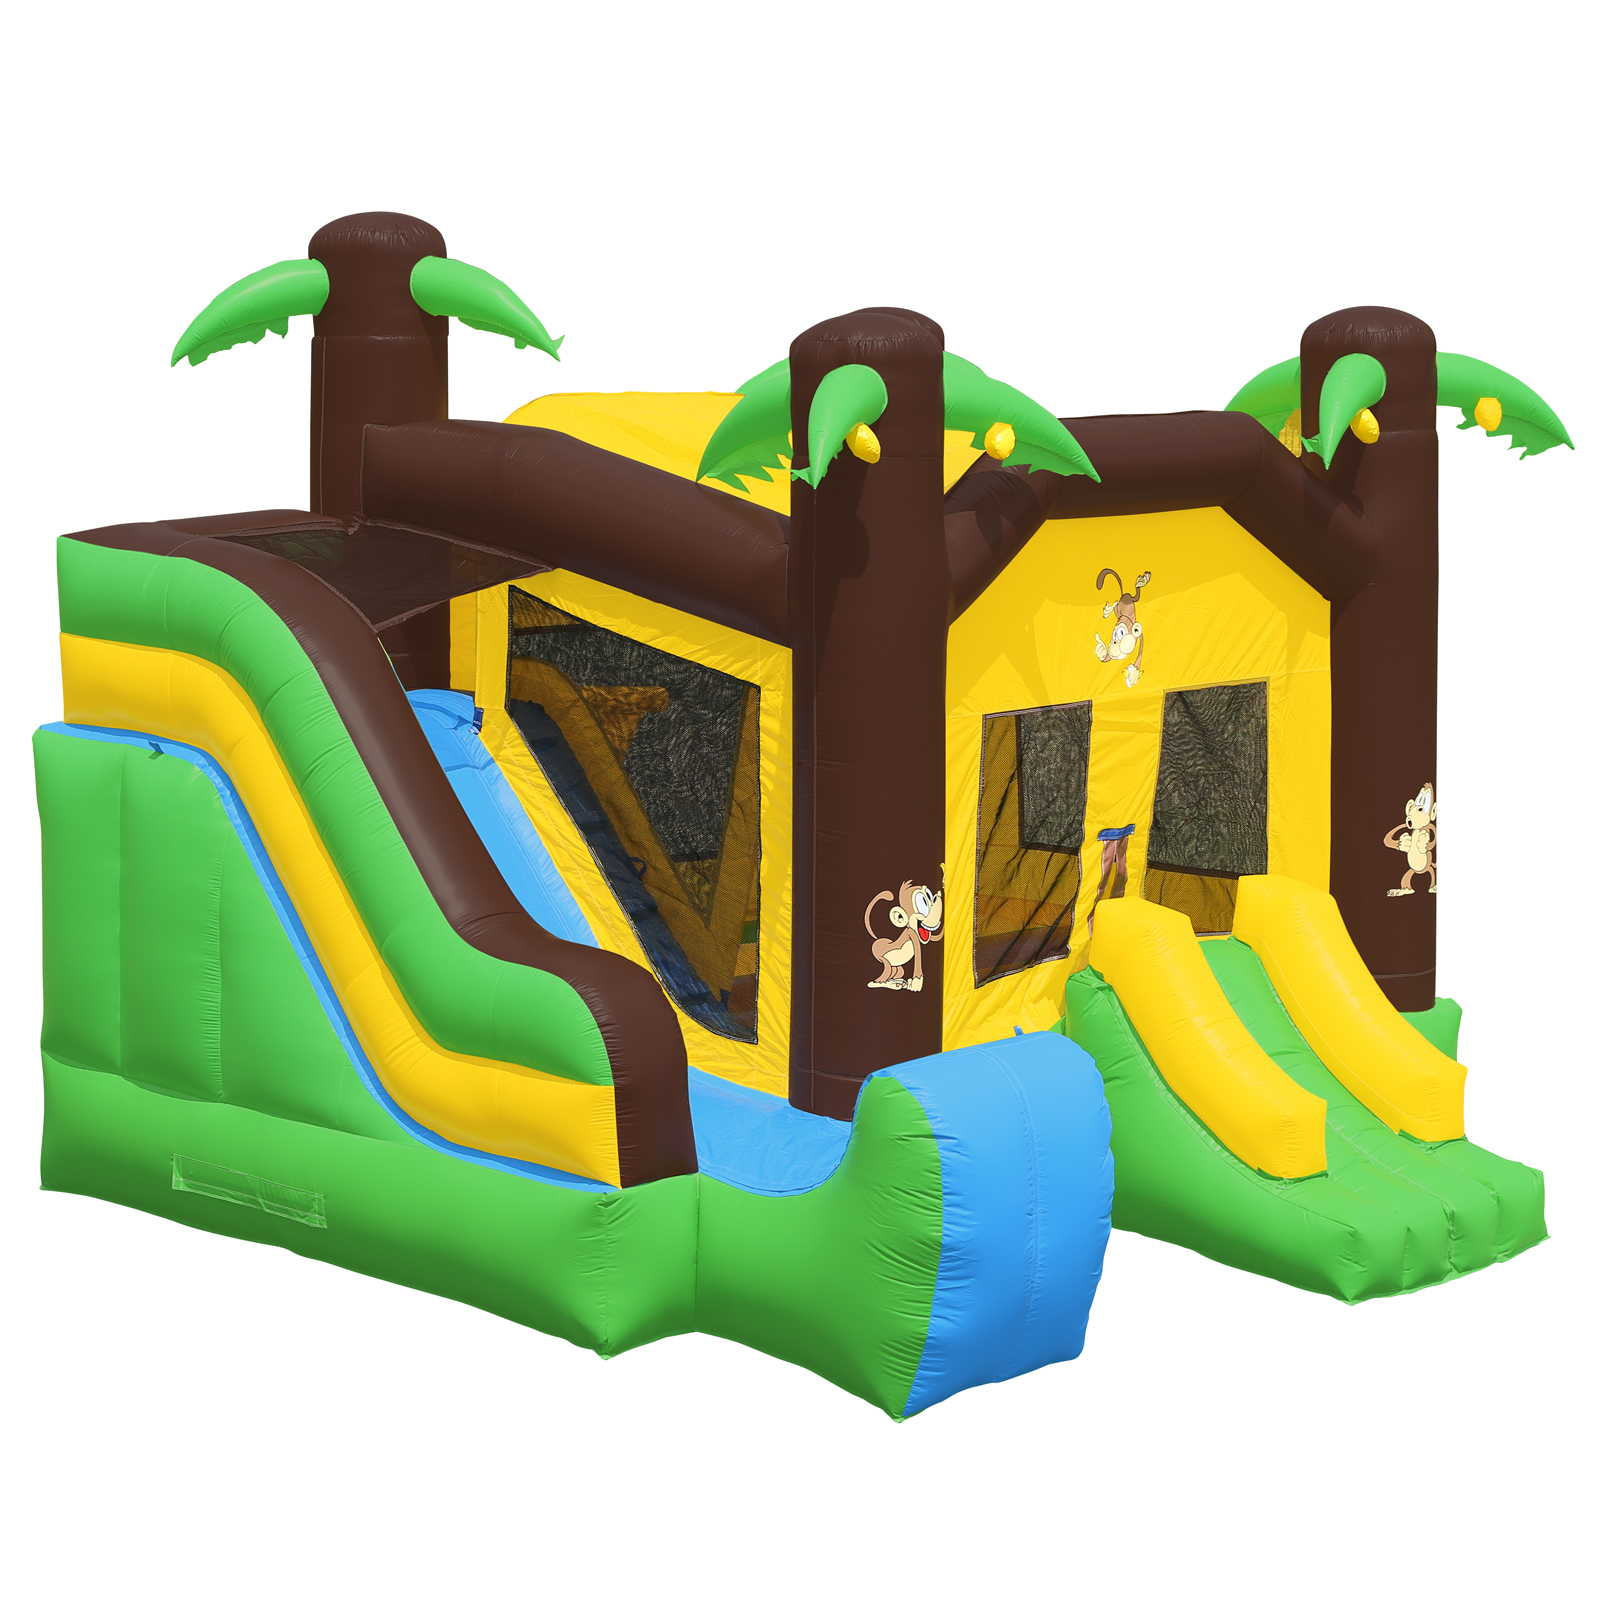 Inflatable HQ Commercial Grade Bounce House 100% PVC Jungle Slide Inflatable Only